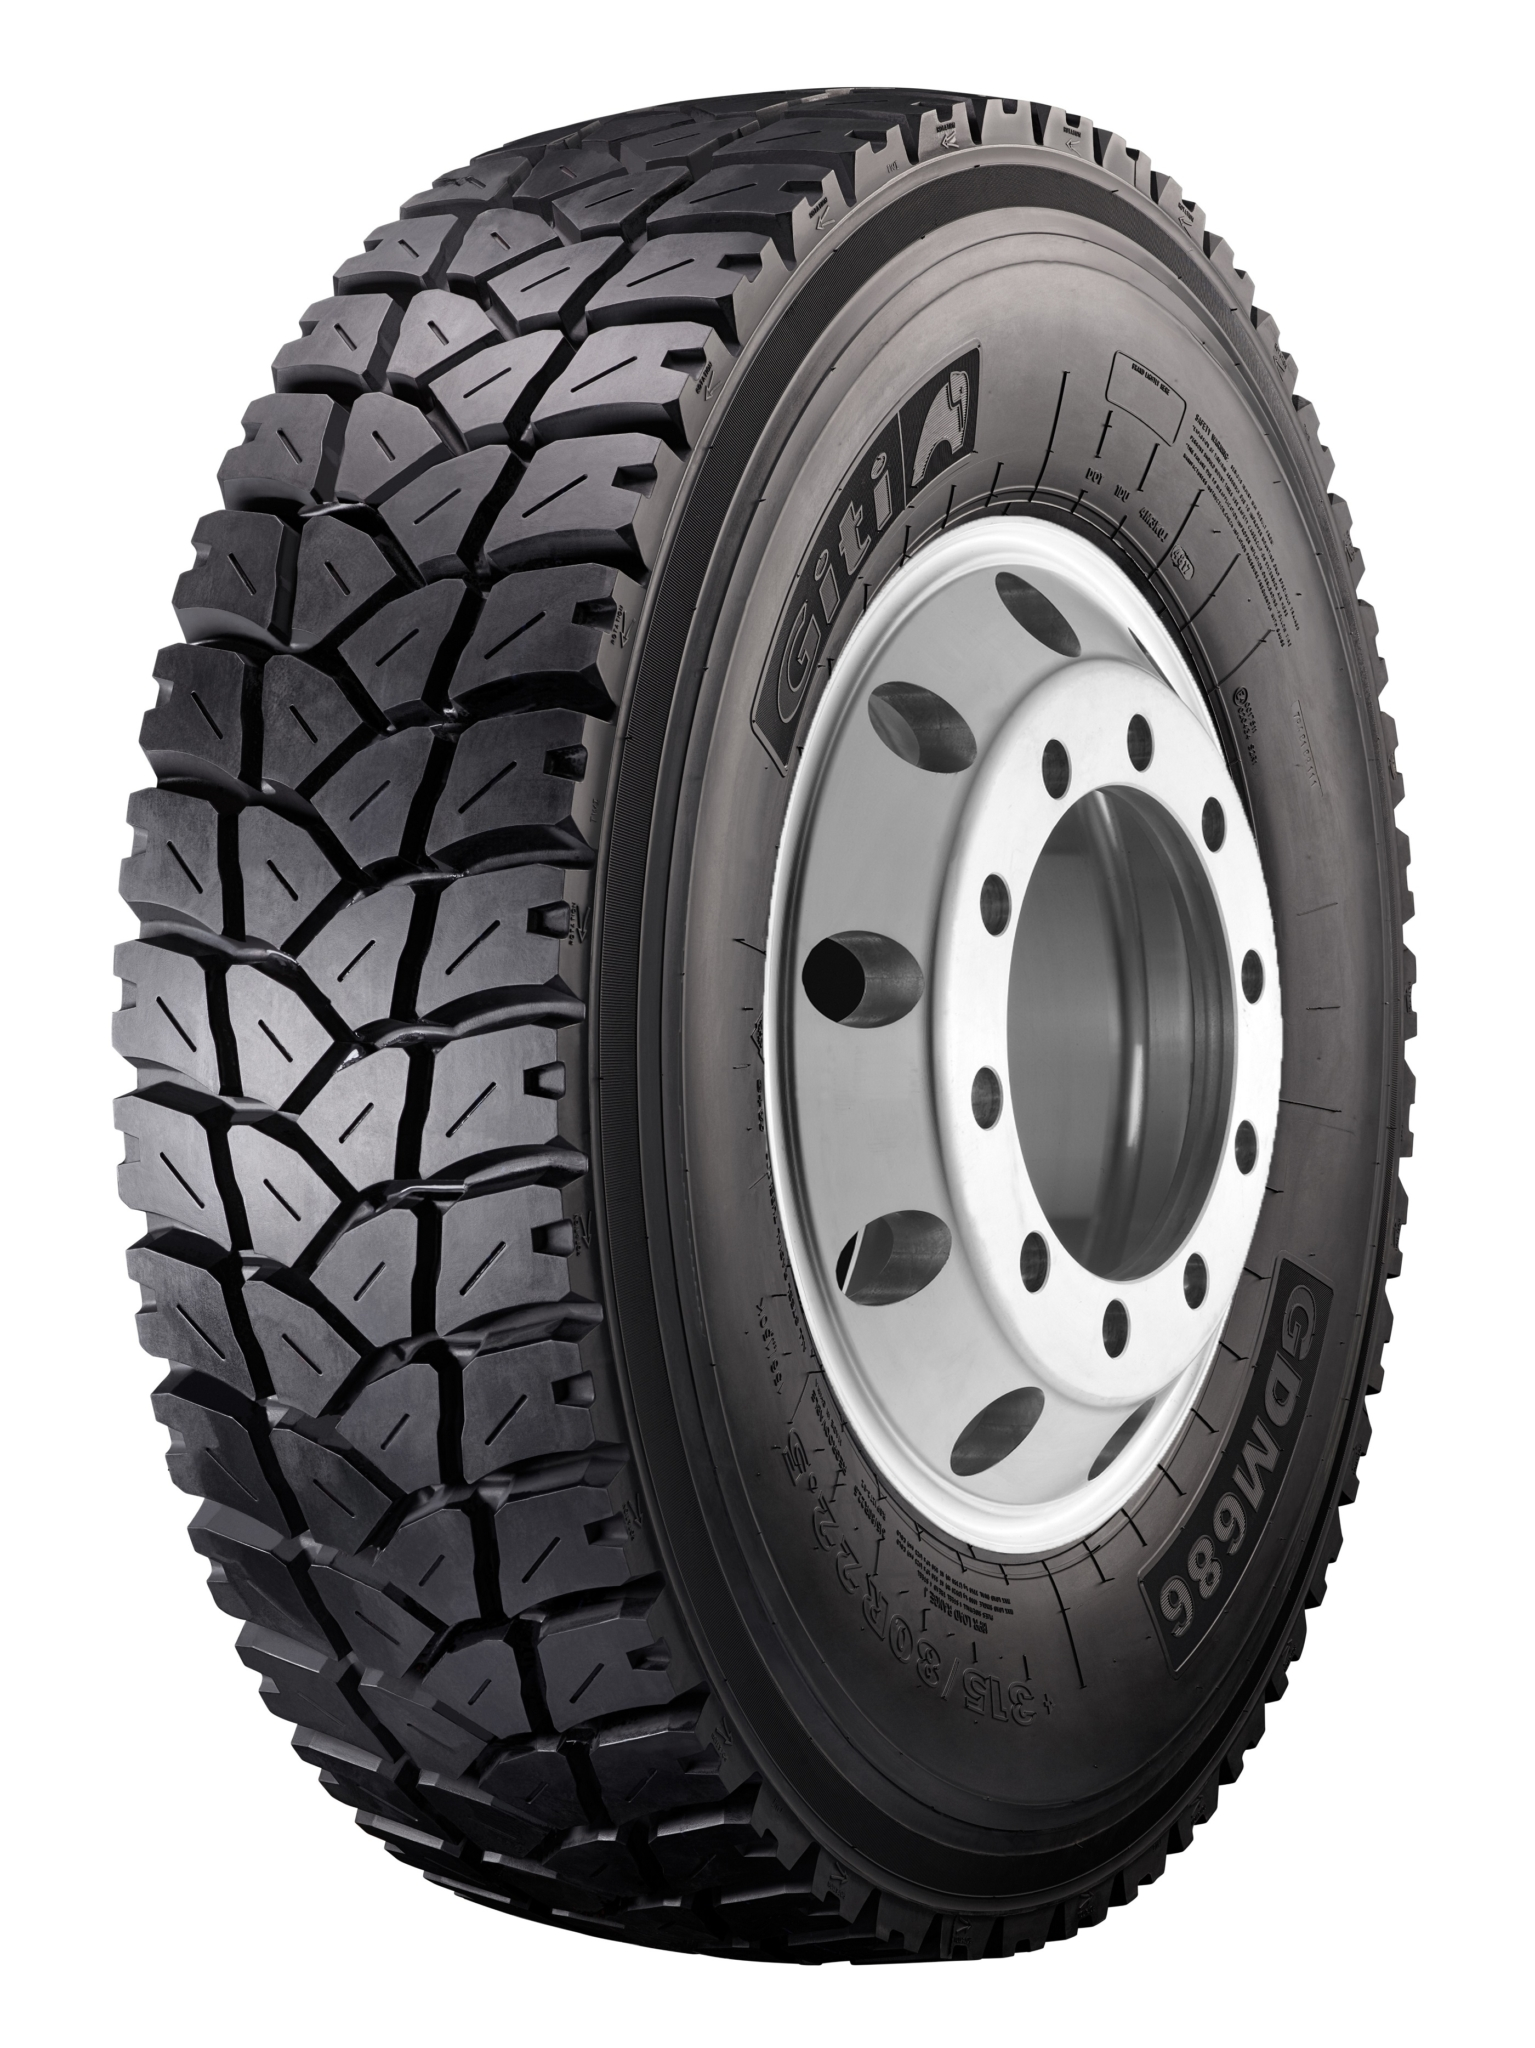 Giti upgrades GDM686 mixed service truck tyre, increasing mileage 20%